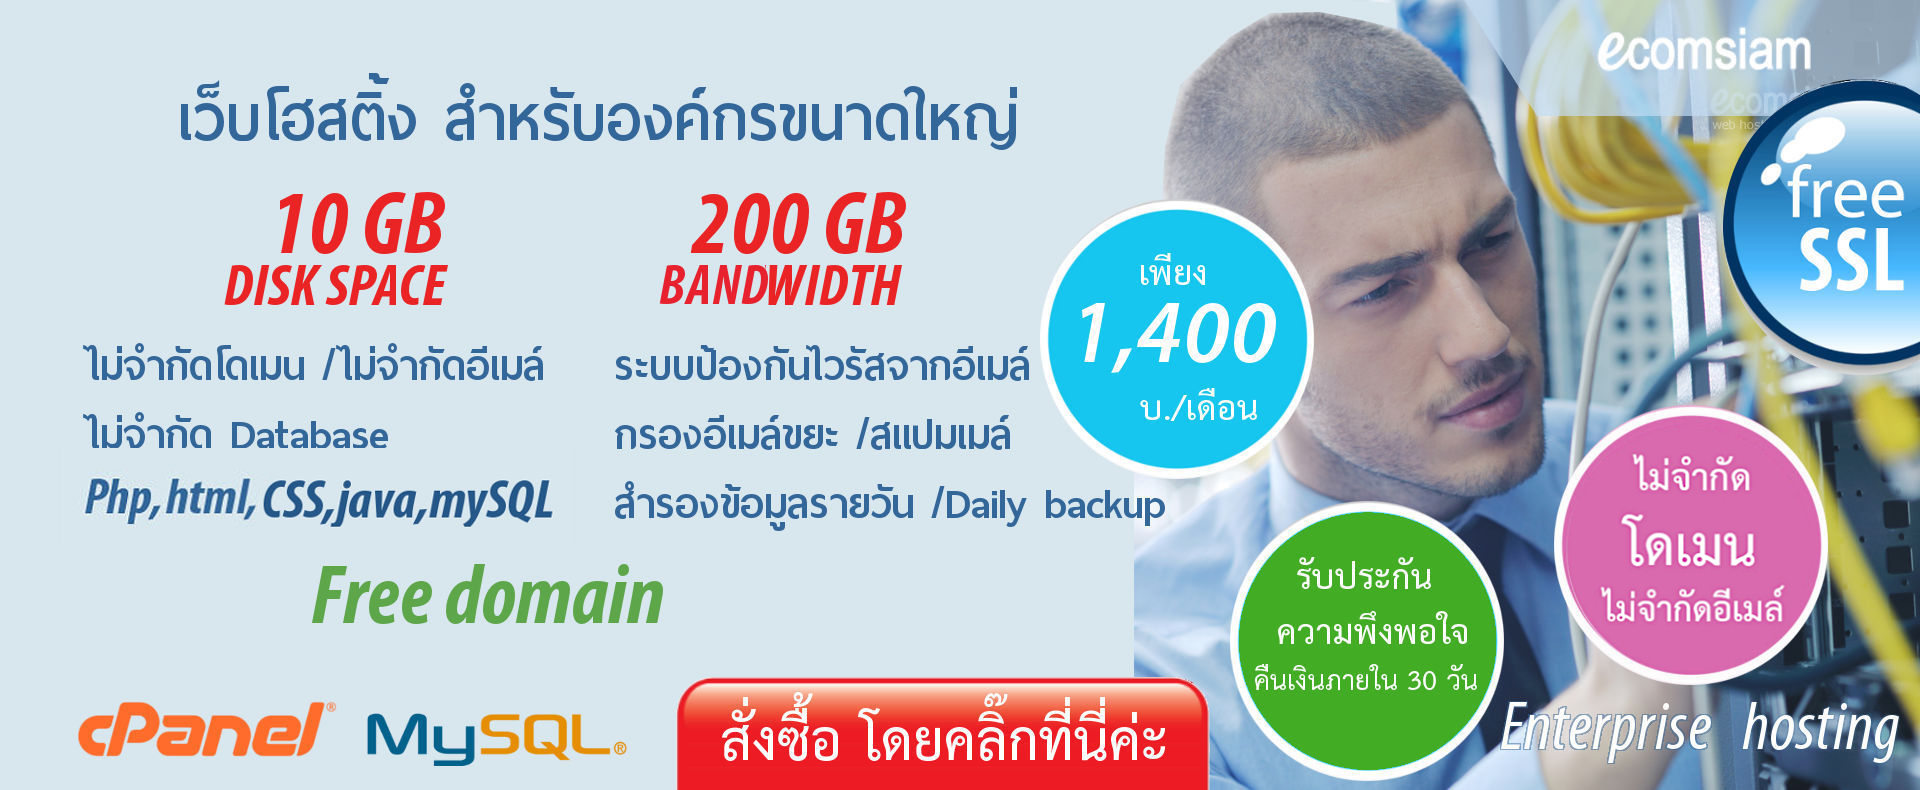 web hosting thailand - enterprise hosting plan ,unlimited domain, unlimited email+ MySql DB free domain, free SSL,only 1,400 baht/month